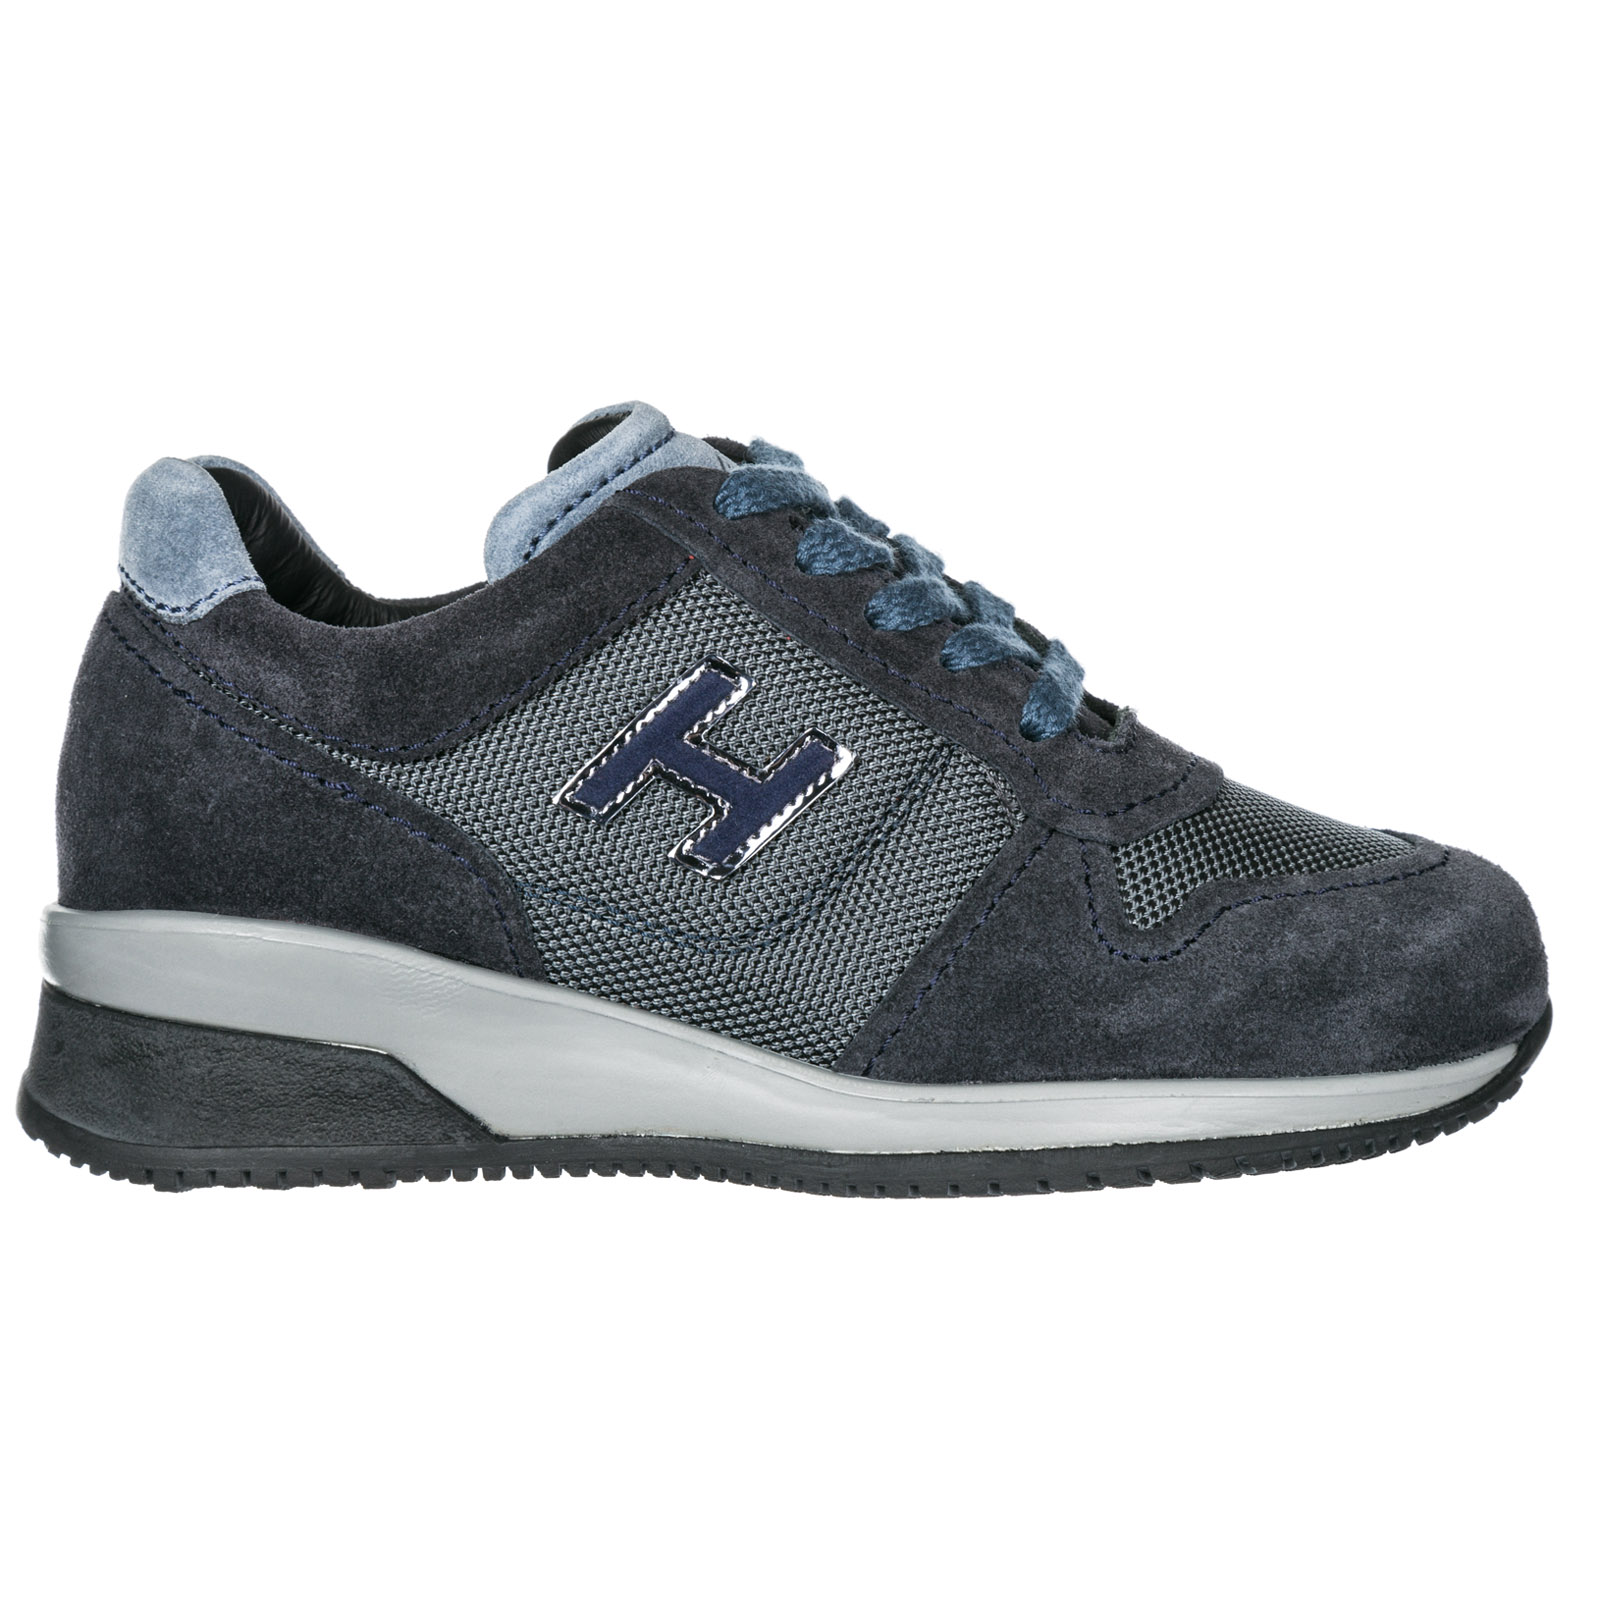 Boys Shoes Child Sneakers Suede Leather Elective in Grey